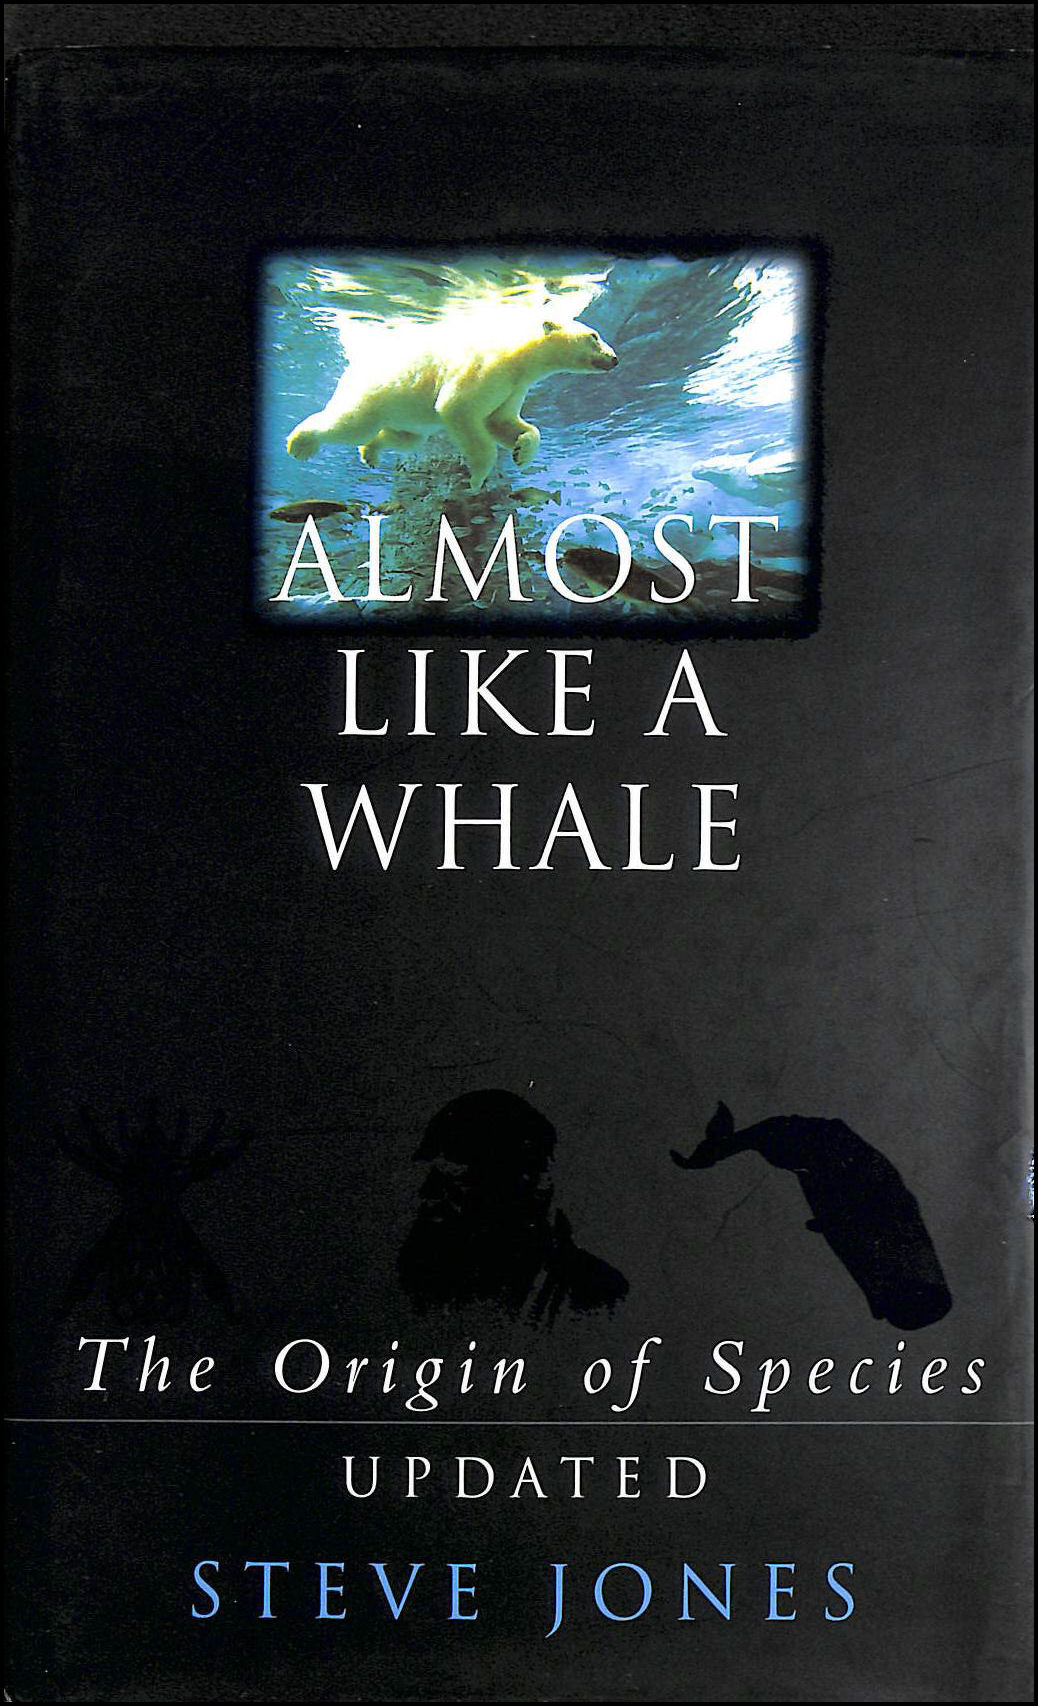 Image for Almost Like A Whale, The Origin of Species.